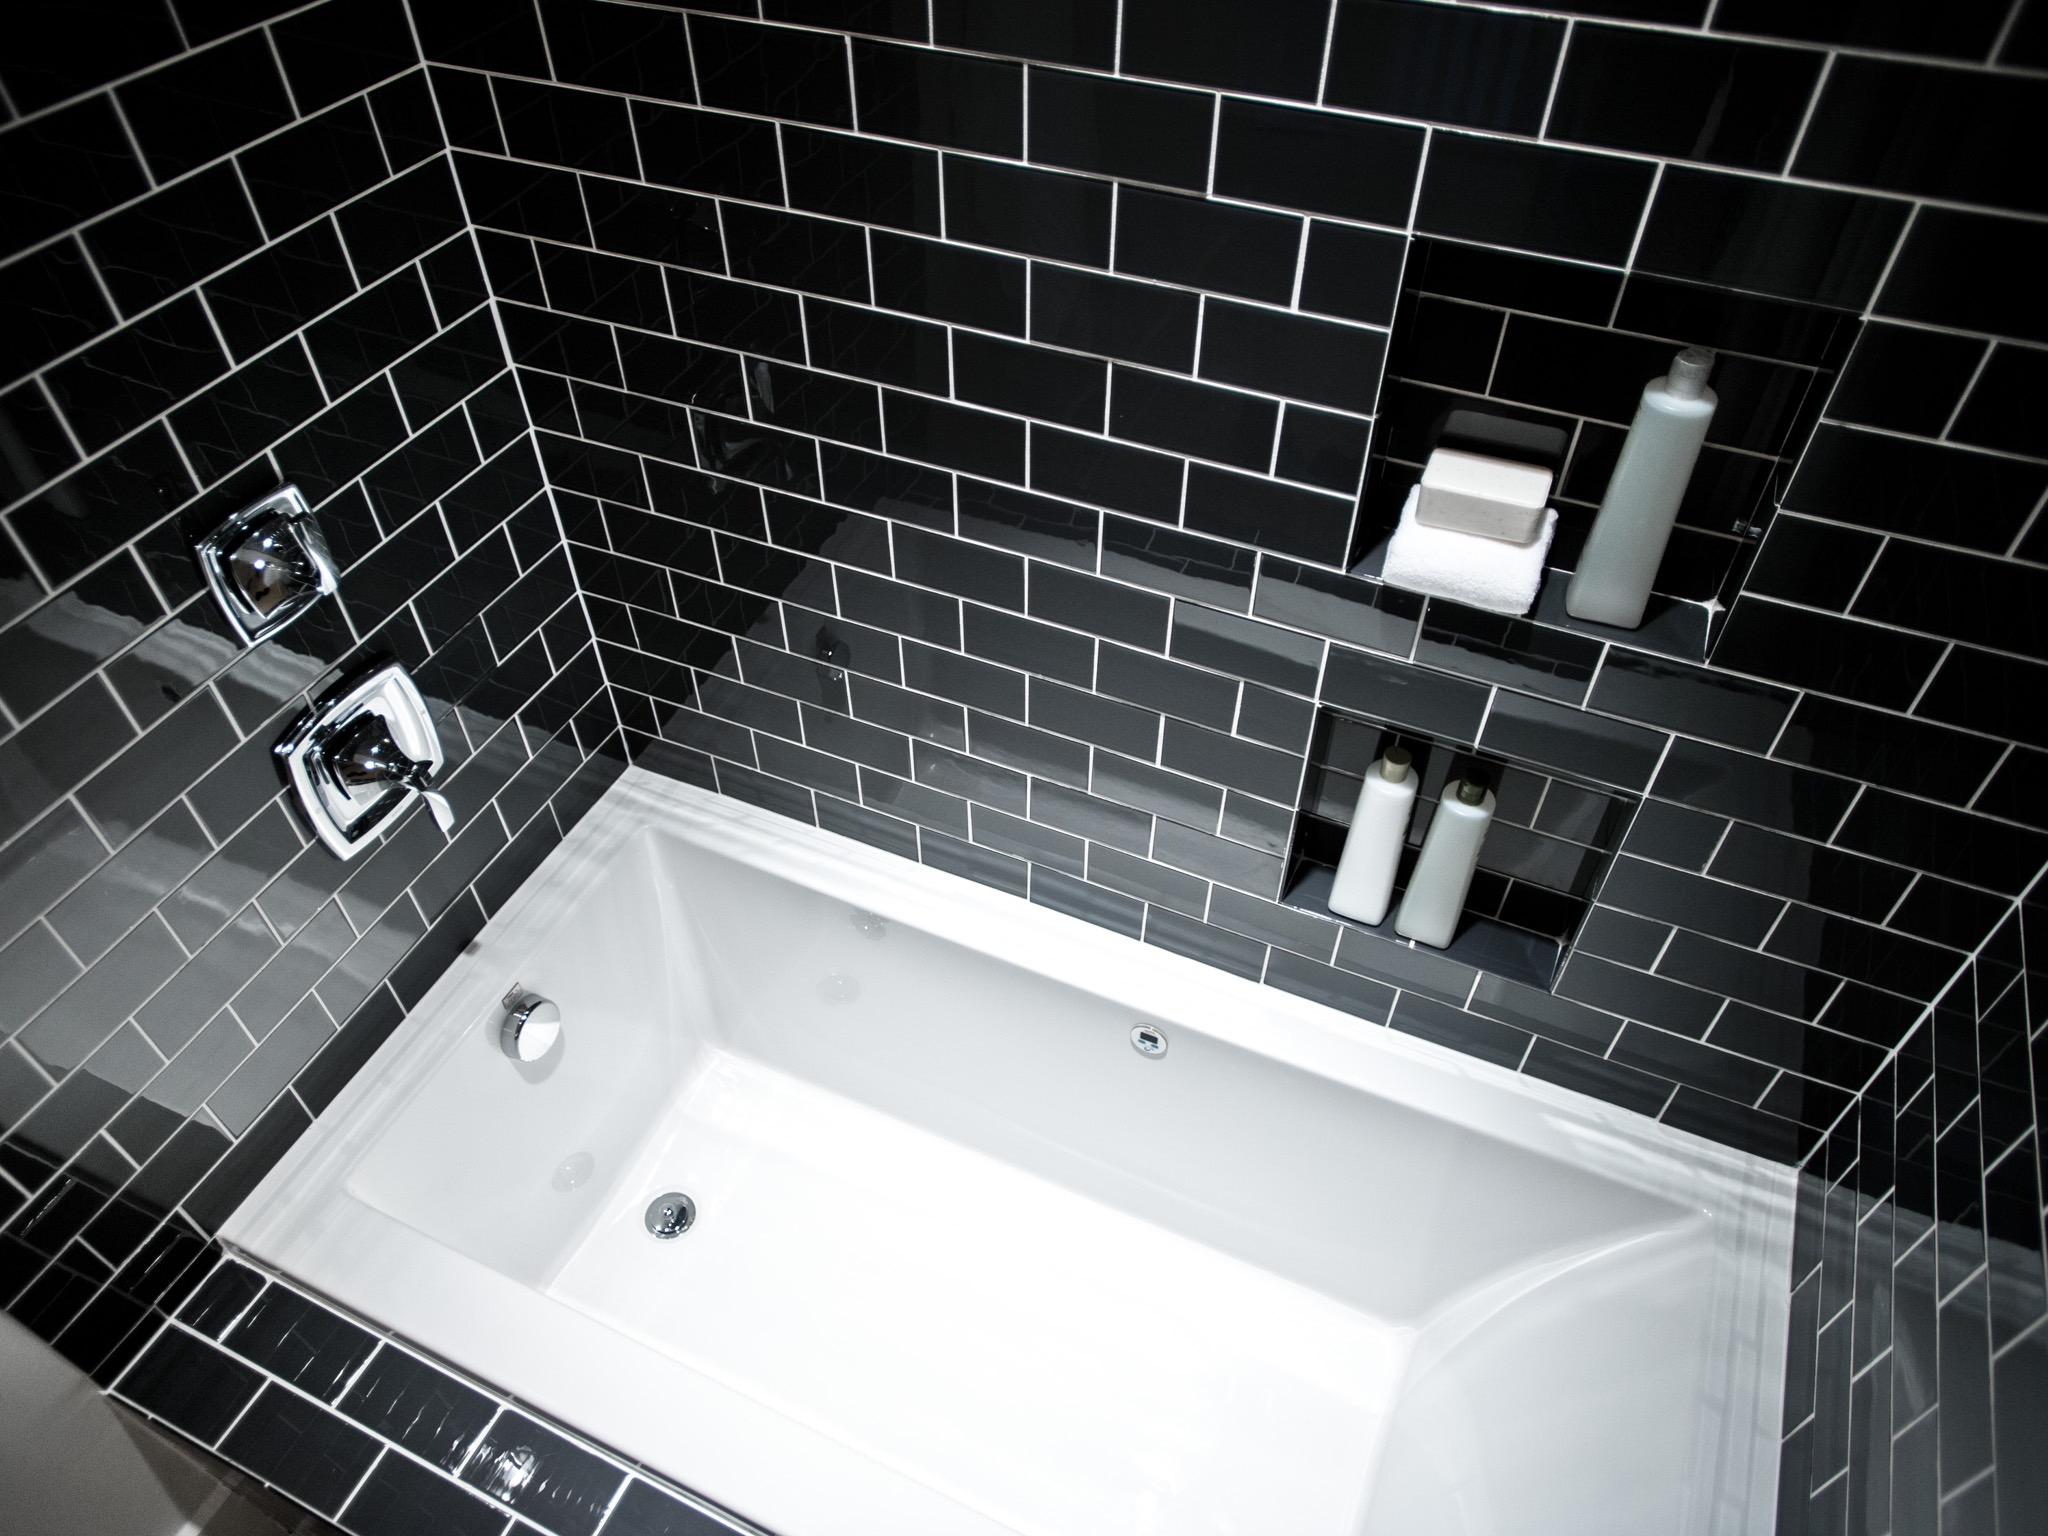 Black And White Modern Bathroom With Combination Tub And Shower (Photo 4 of 19)